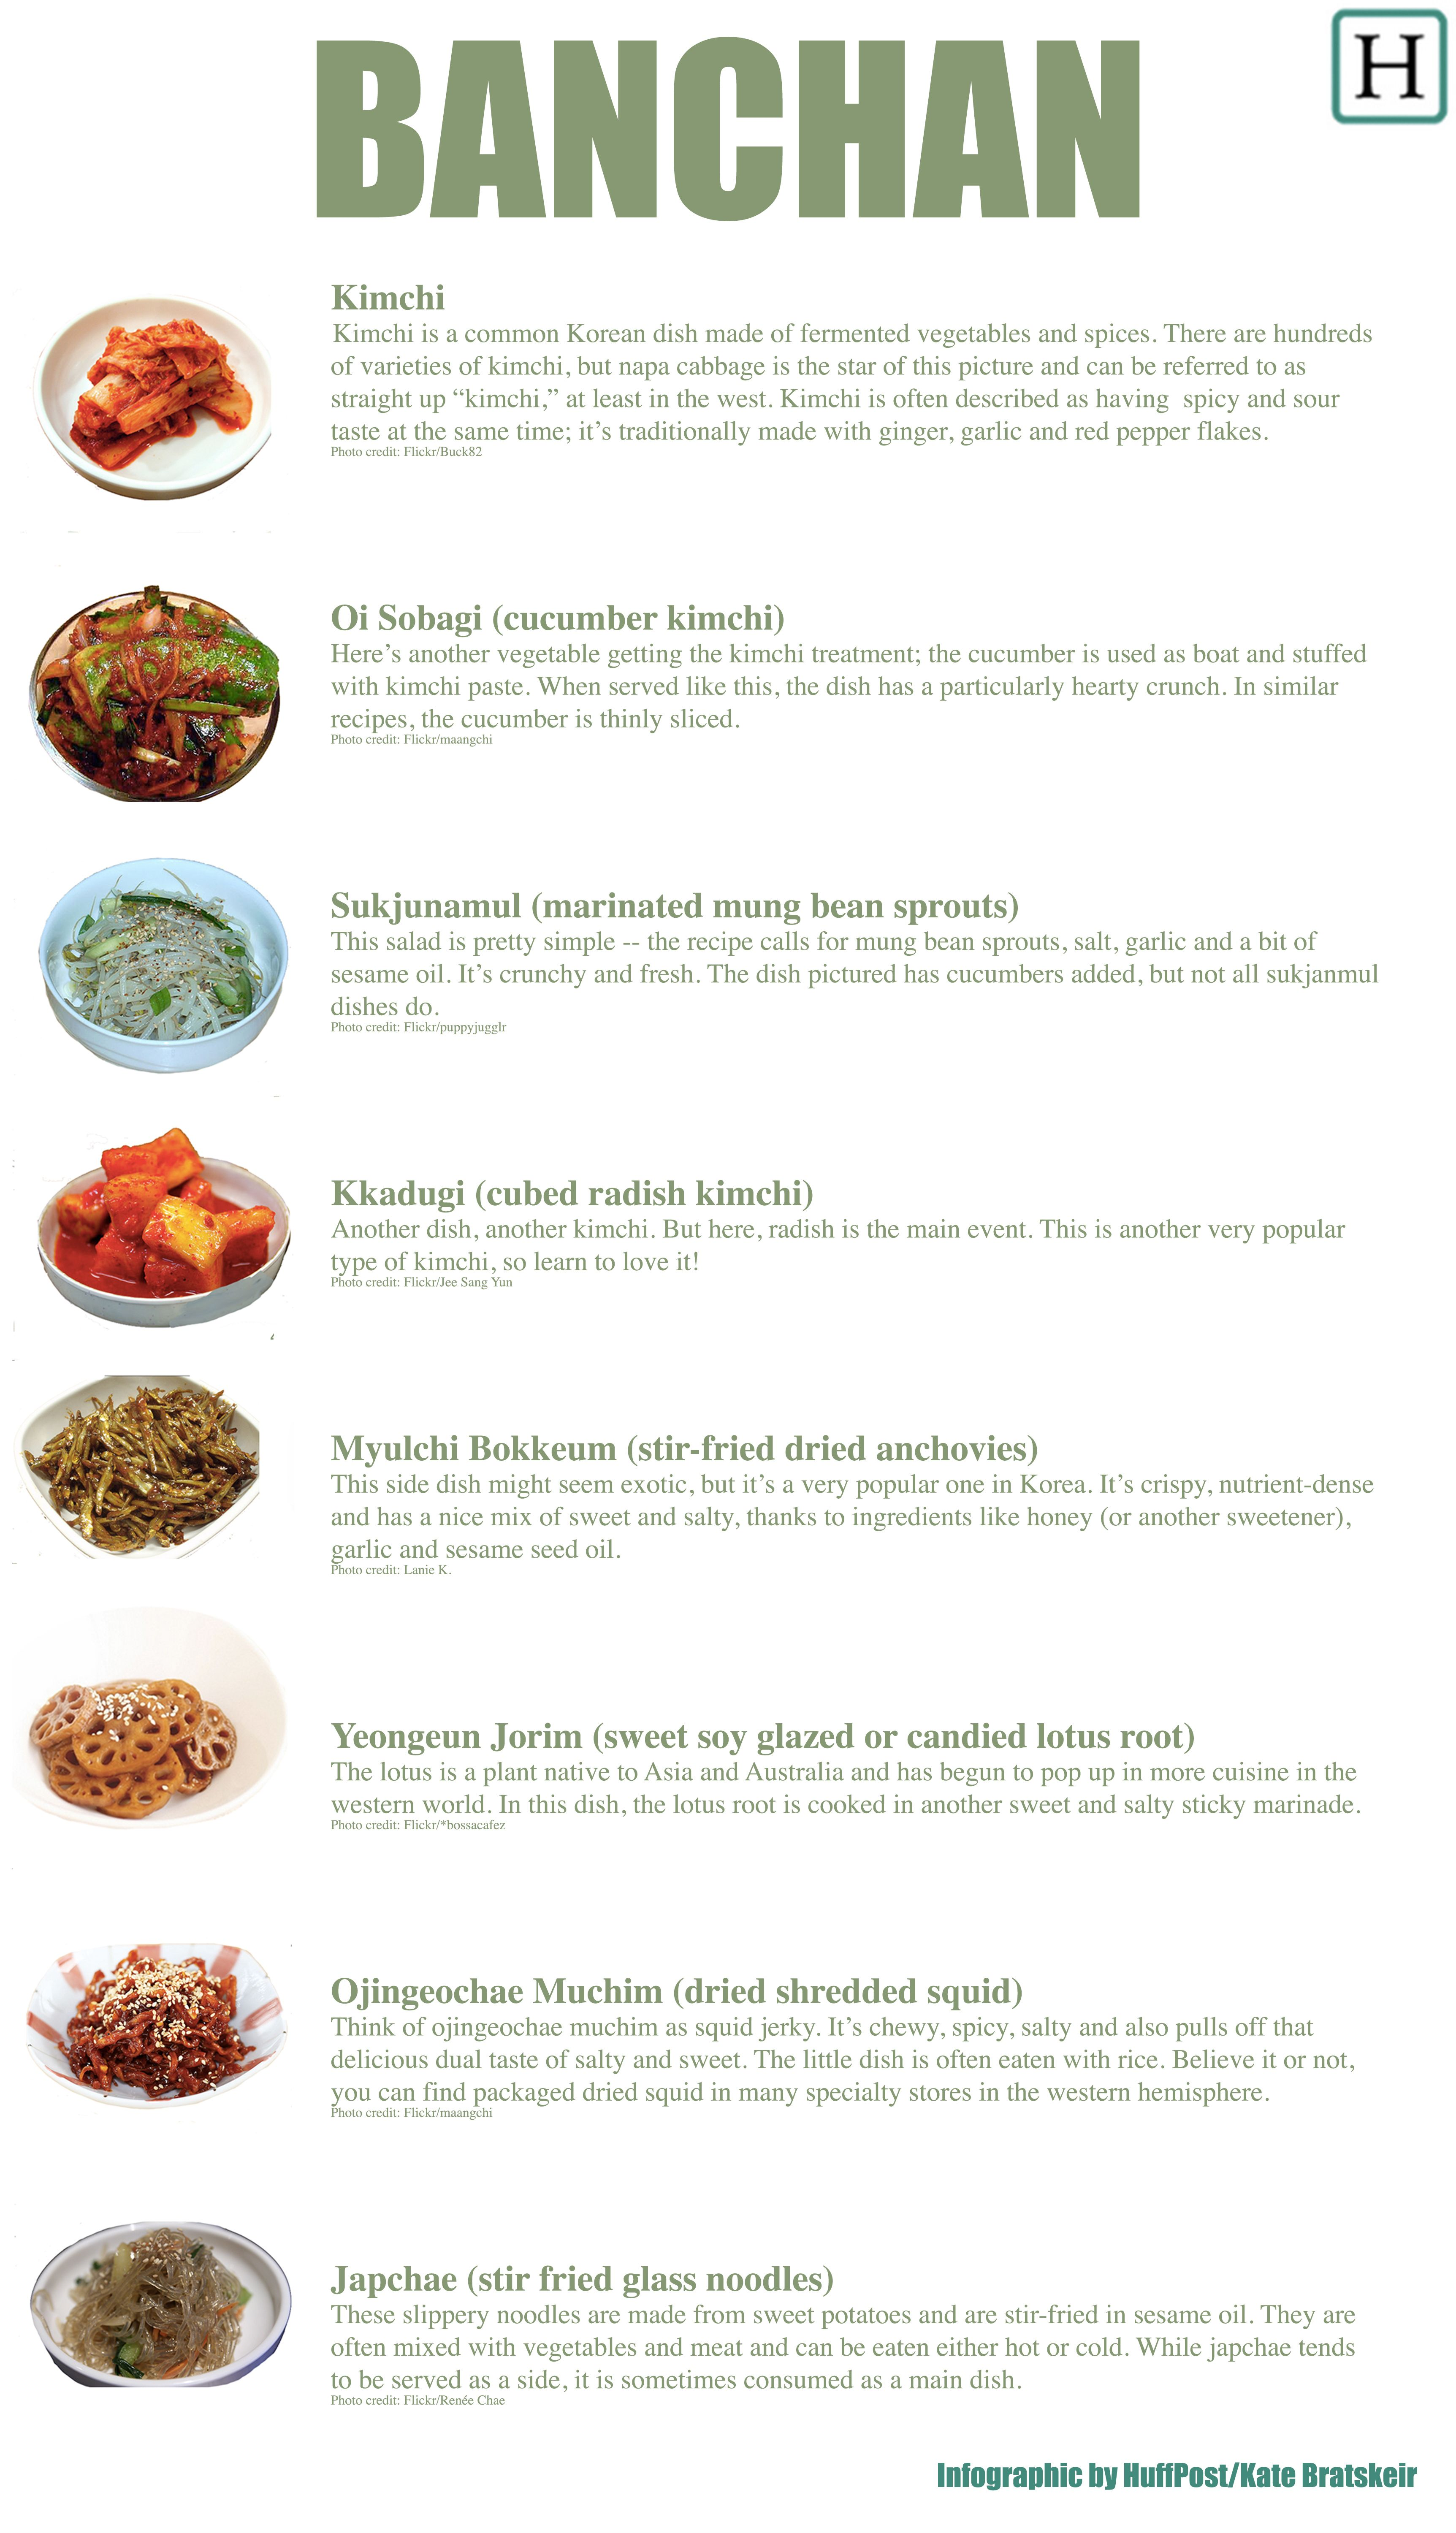 What Exactly Is In Those Little Korean Side Dishes? | Korean, Dishes ...